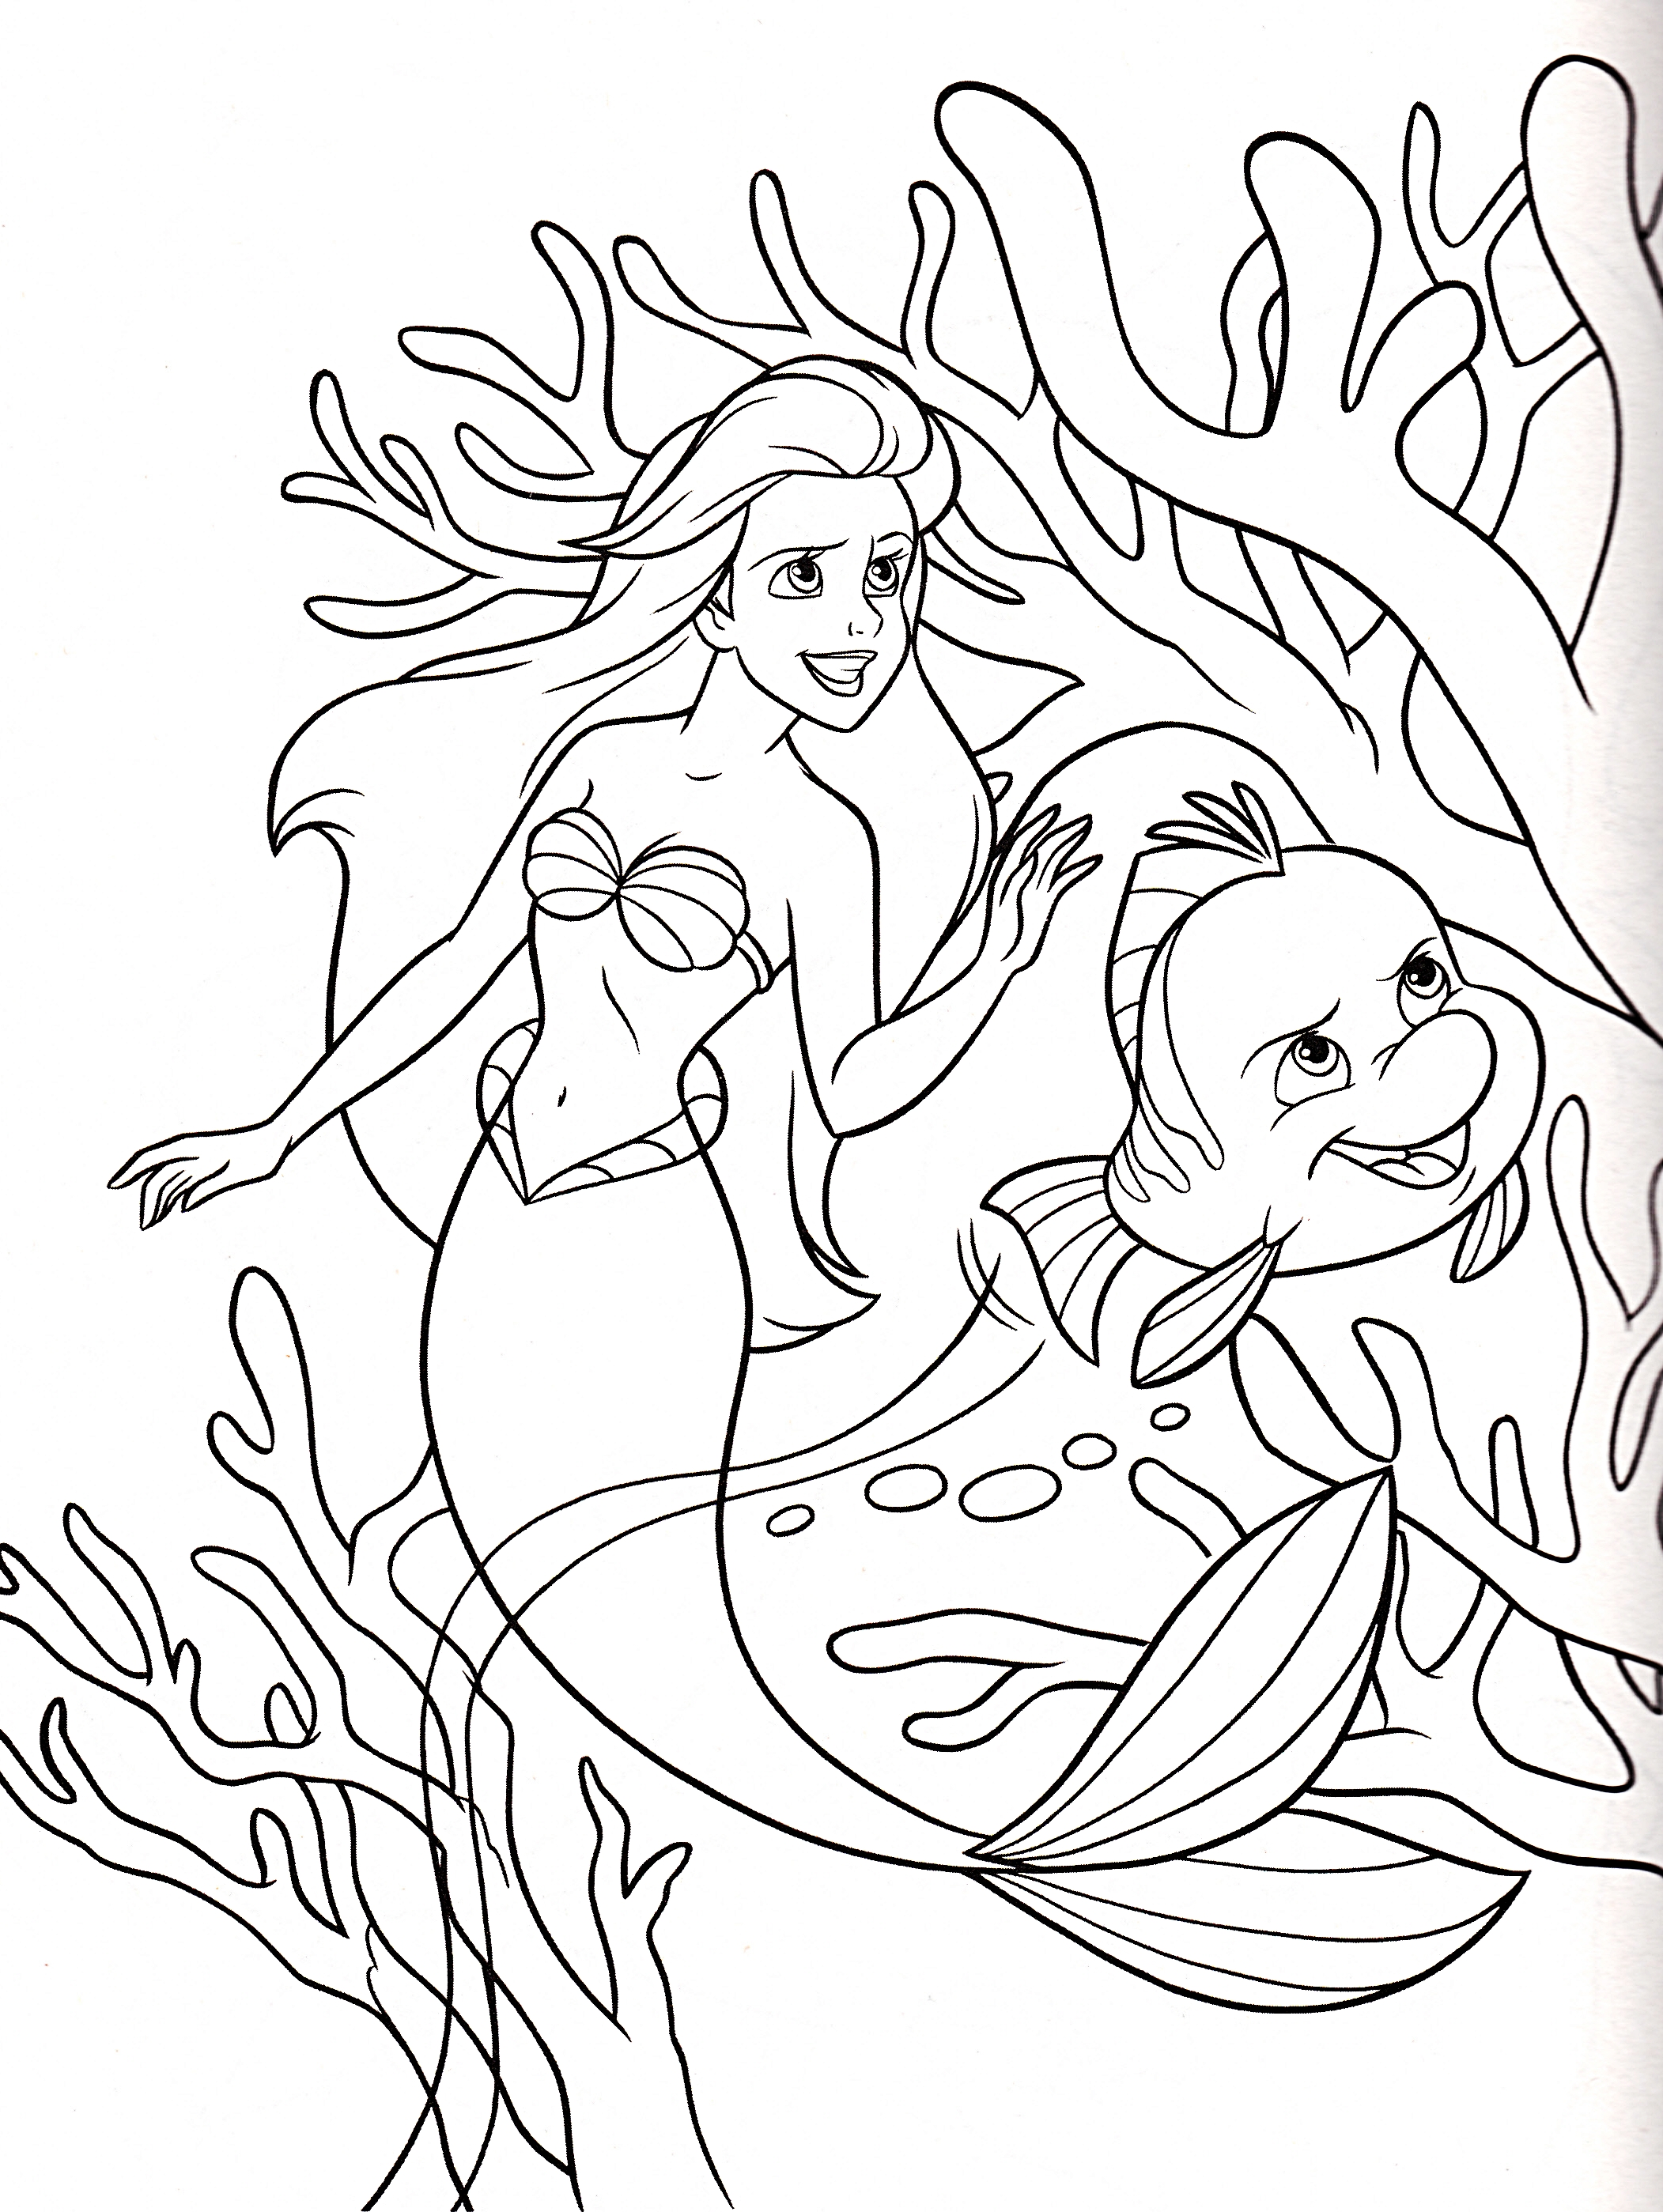 Disney coloring pages 25 coloring kids - Disney coloring kids ...